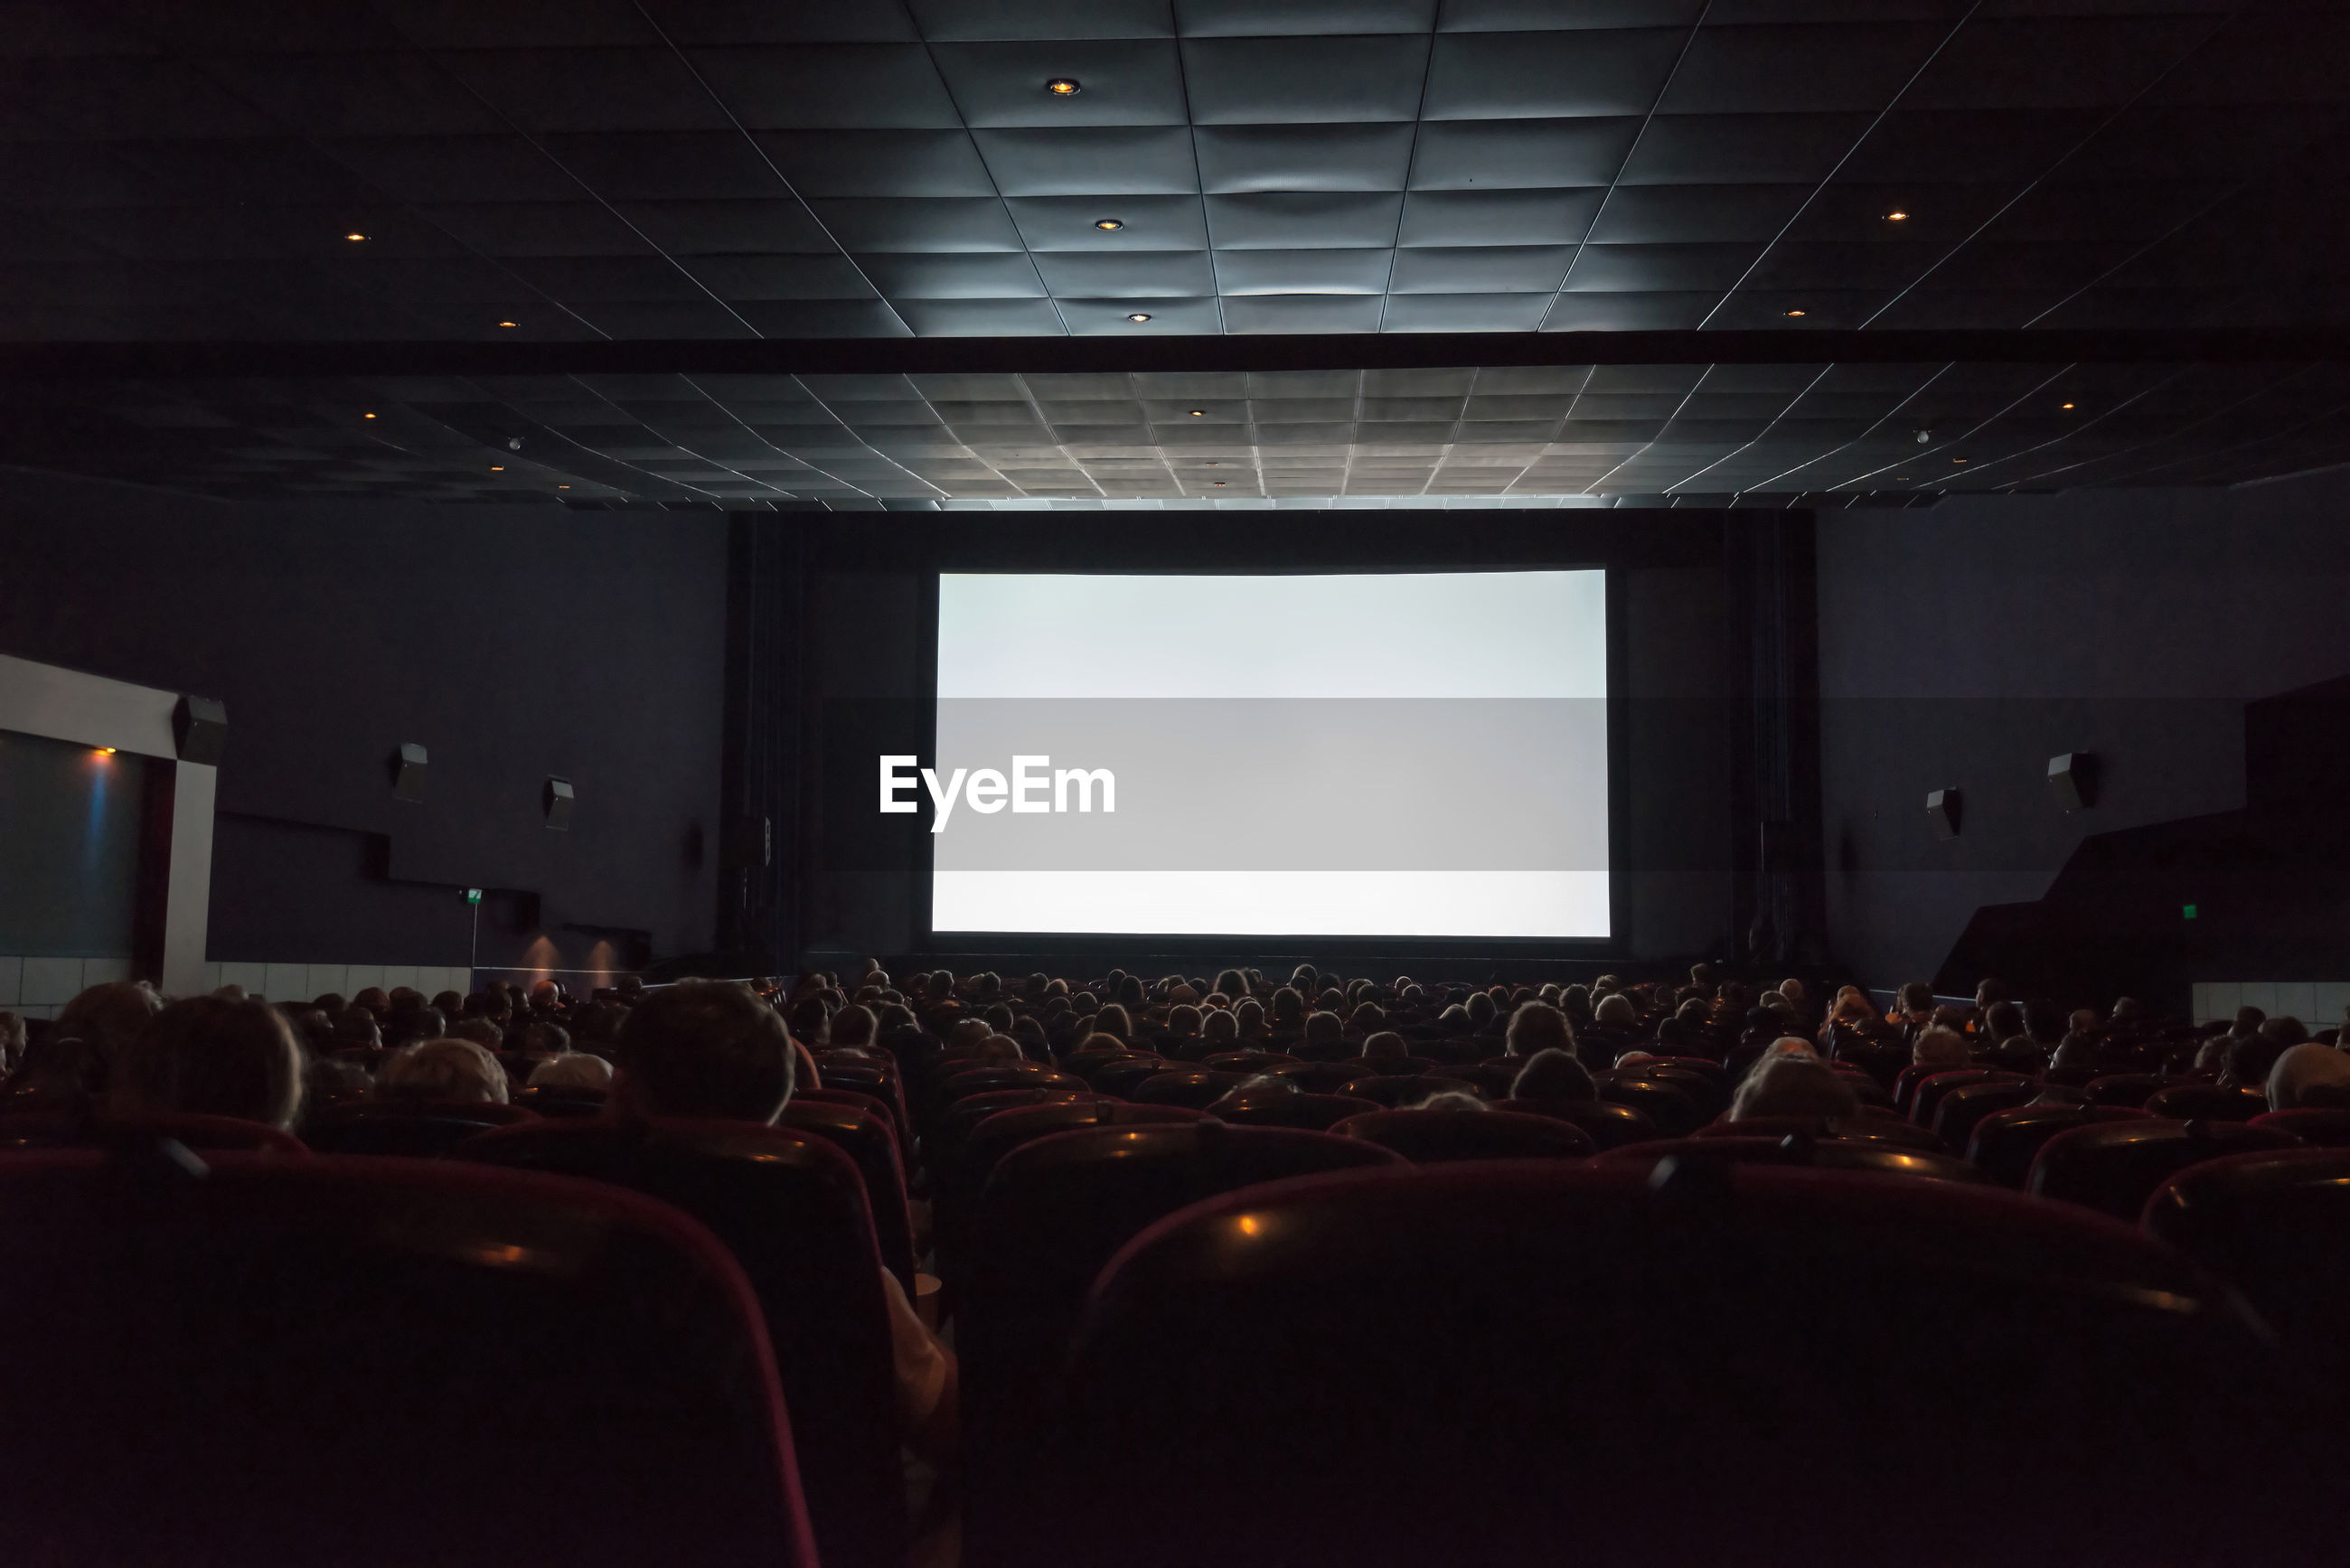 Rear view of audience in movie theater